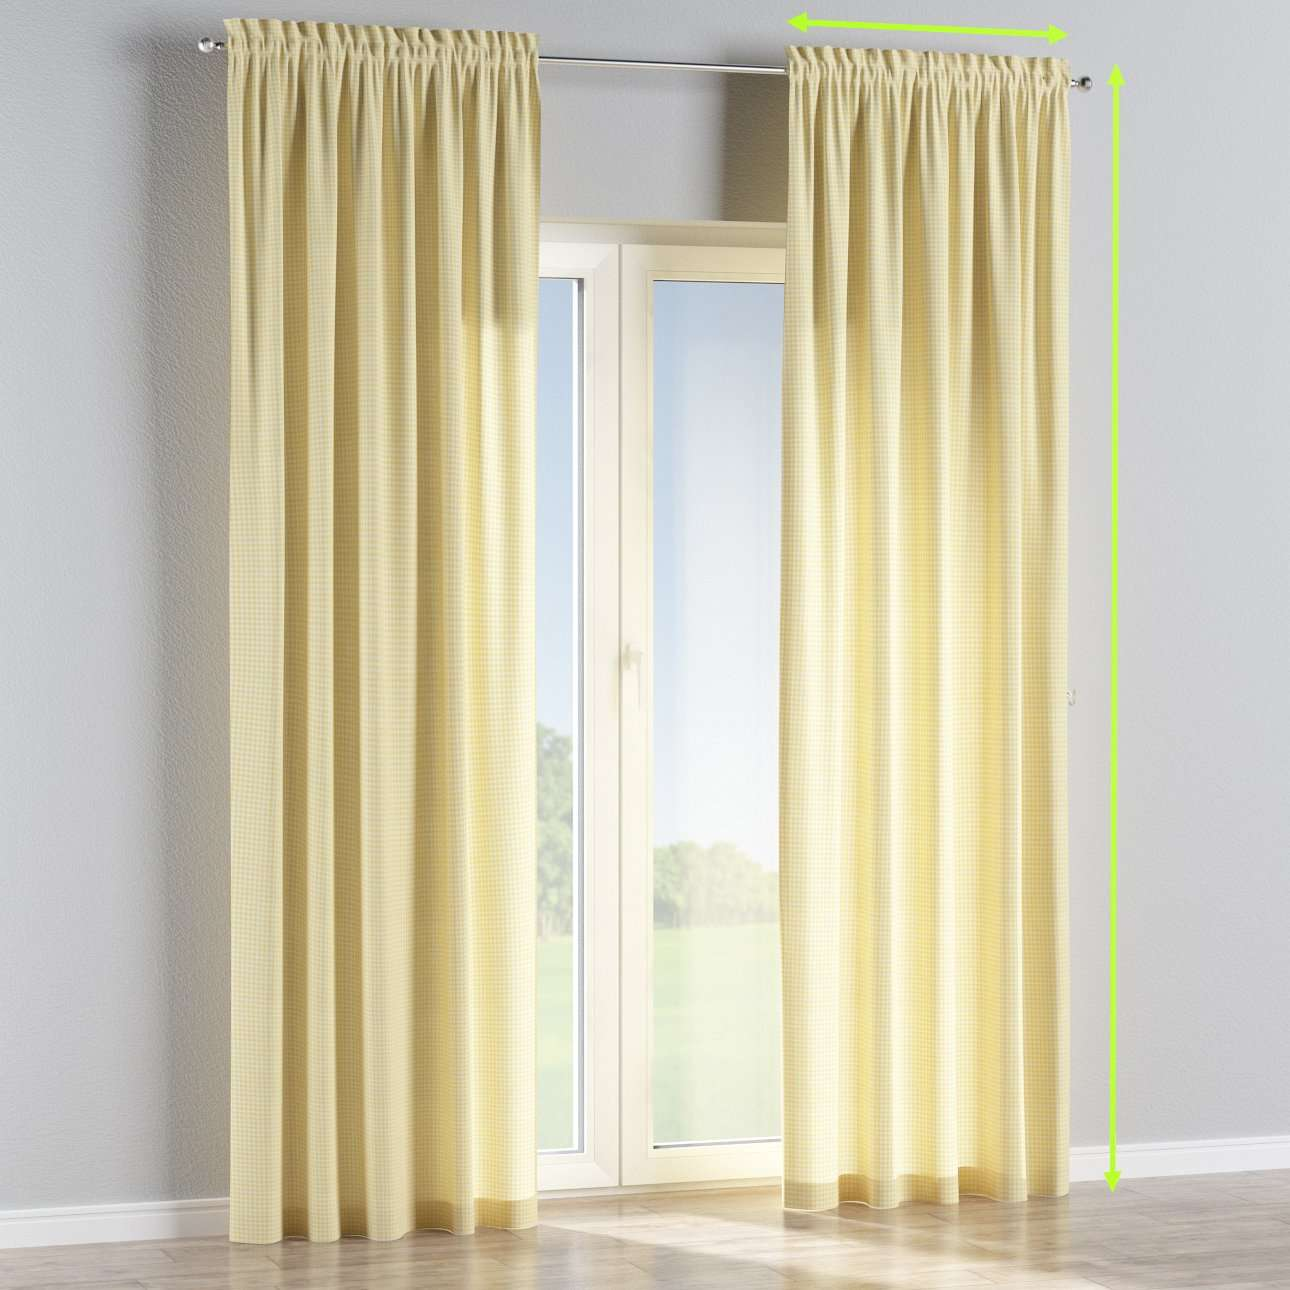 Slot and frill lined curtains in collection Ashley, fabric: 137-64